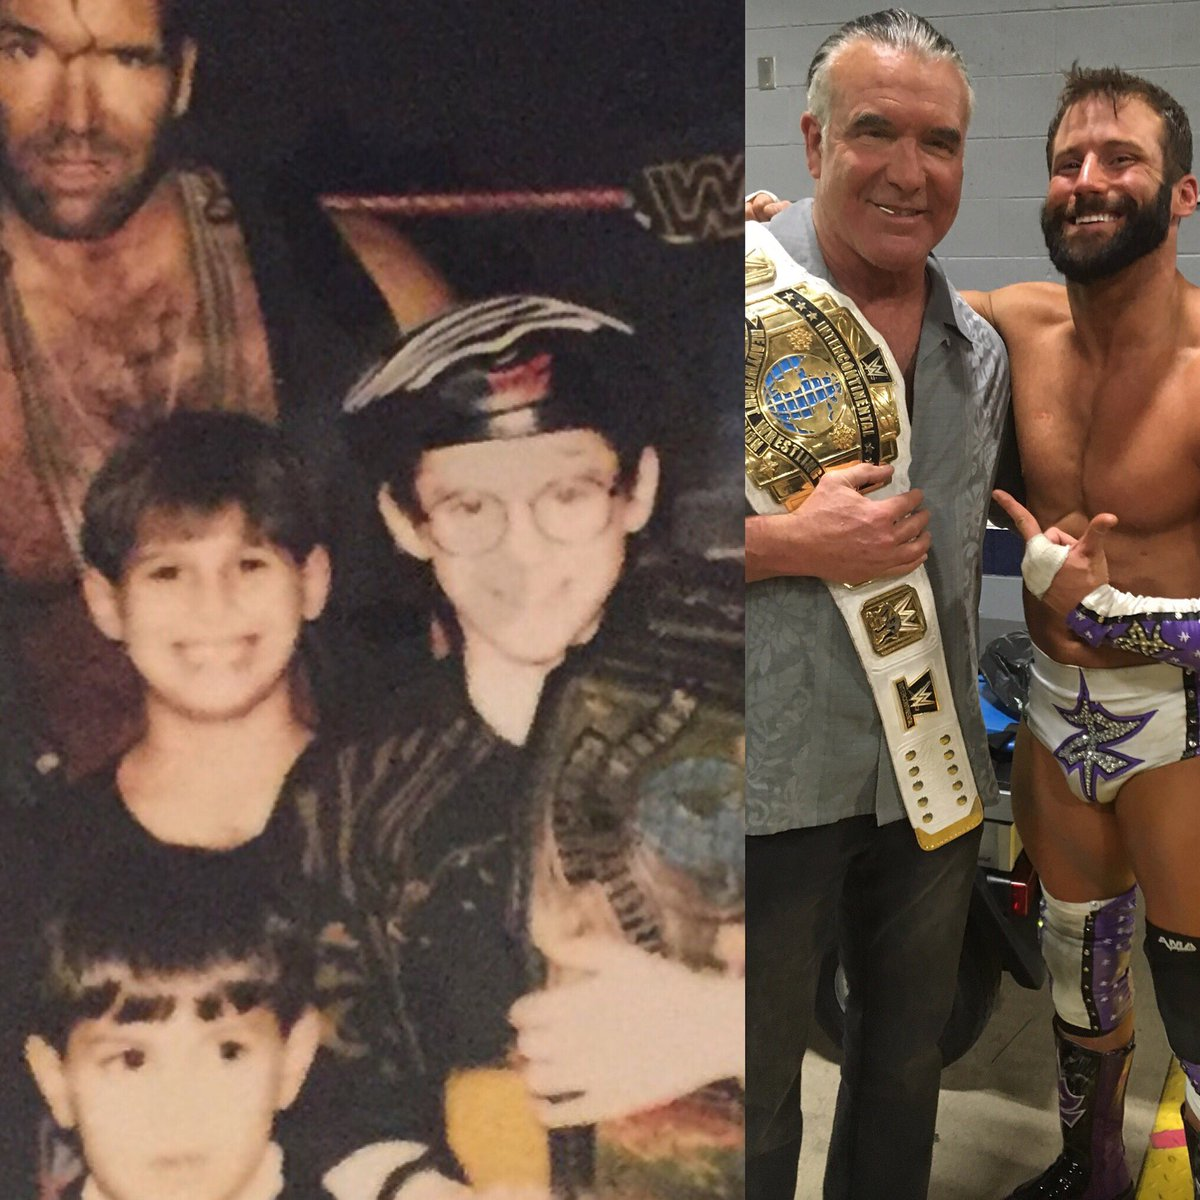 When I was a kid I held @SCOTTHALLNWO's Intercontinental title. Tonight at #WrestleMania, he held MY IC title! https://t.co/f0Jjm23CAg